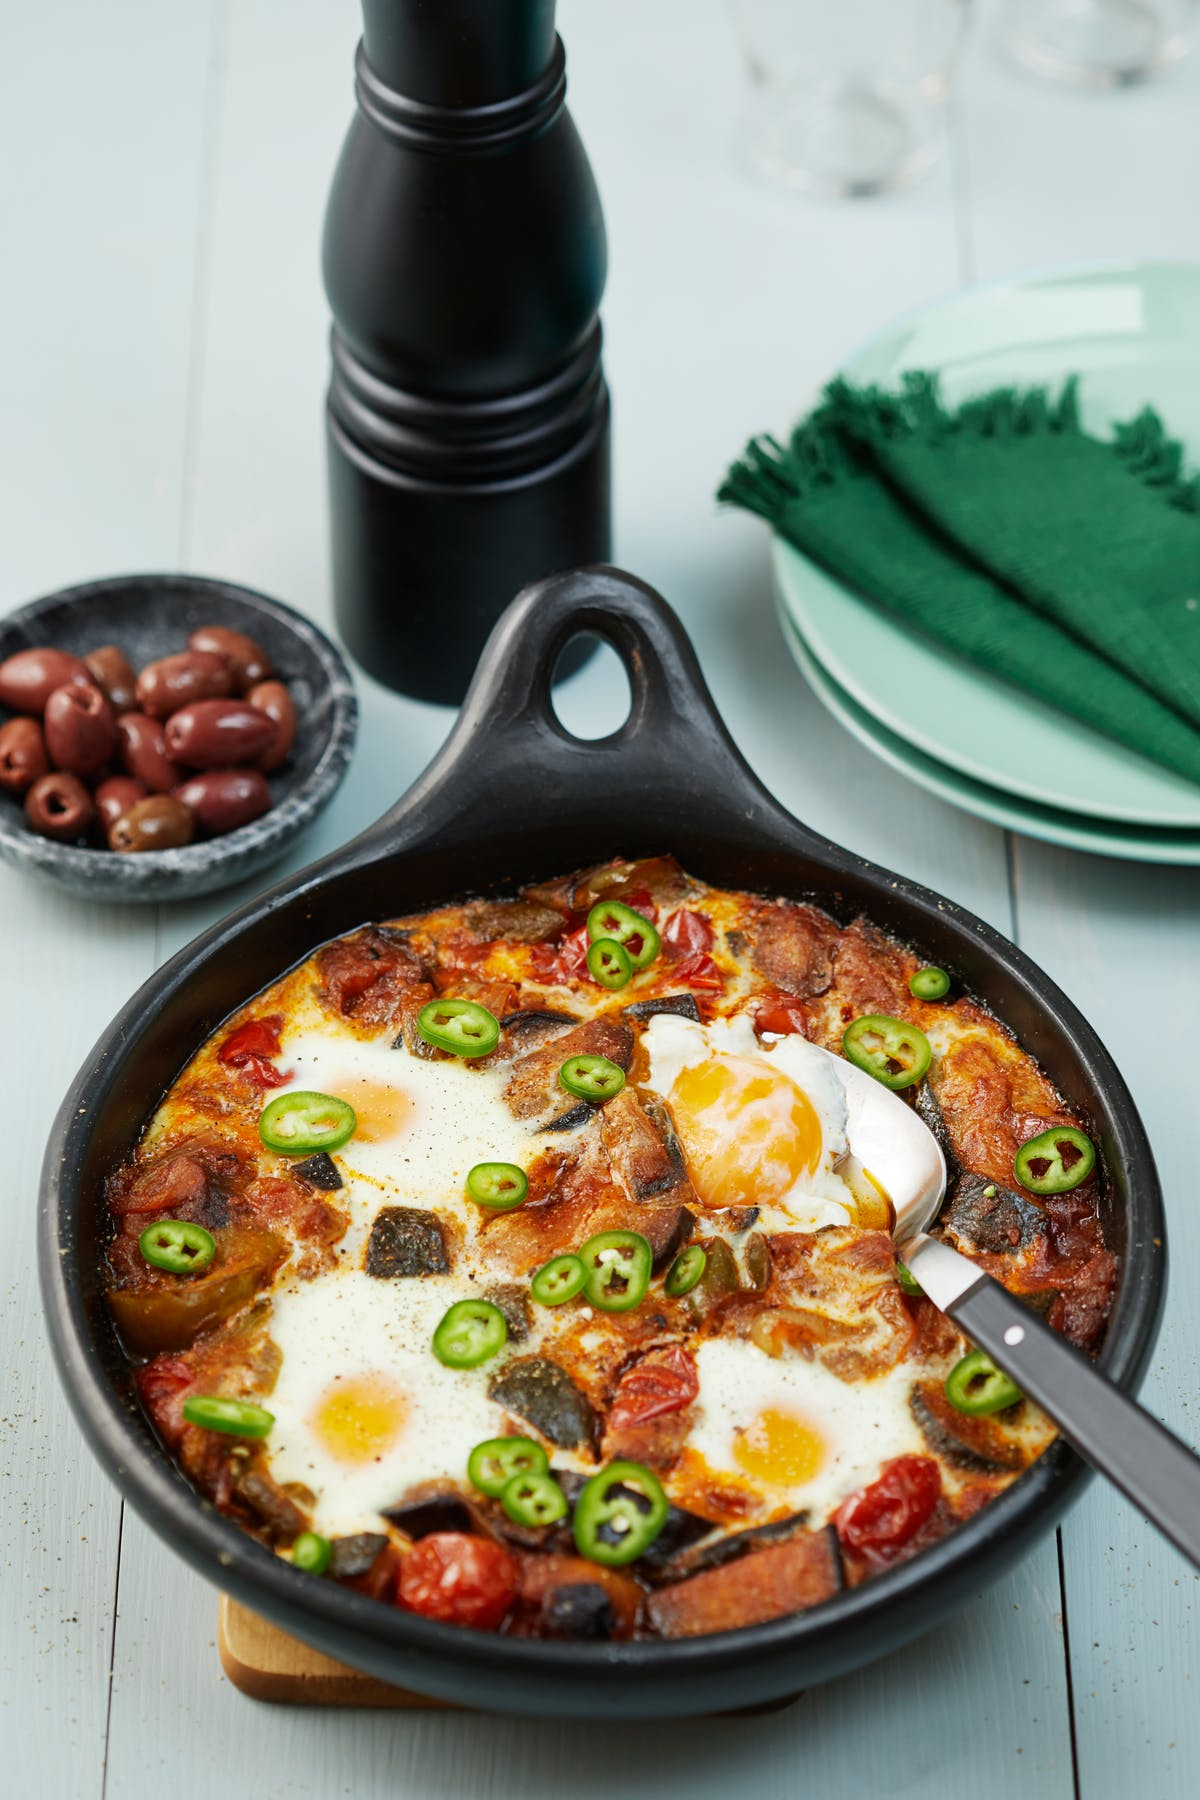 Ratatouille with baked eggs